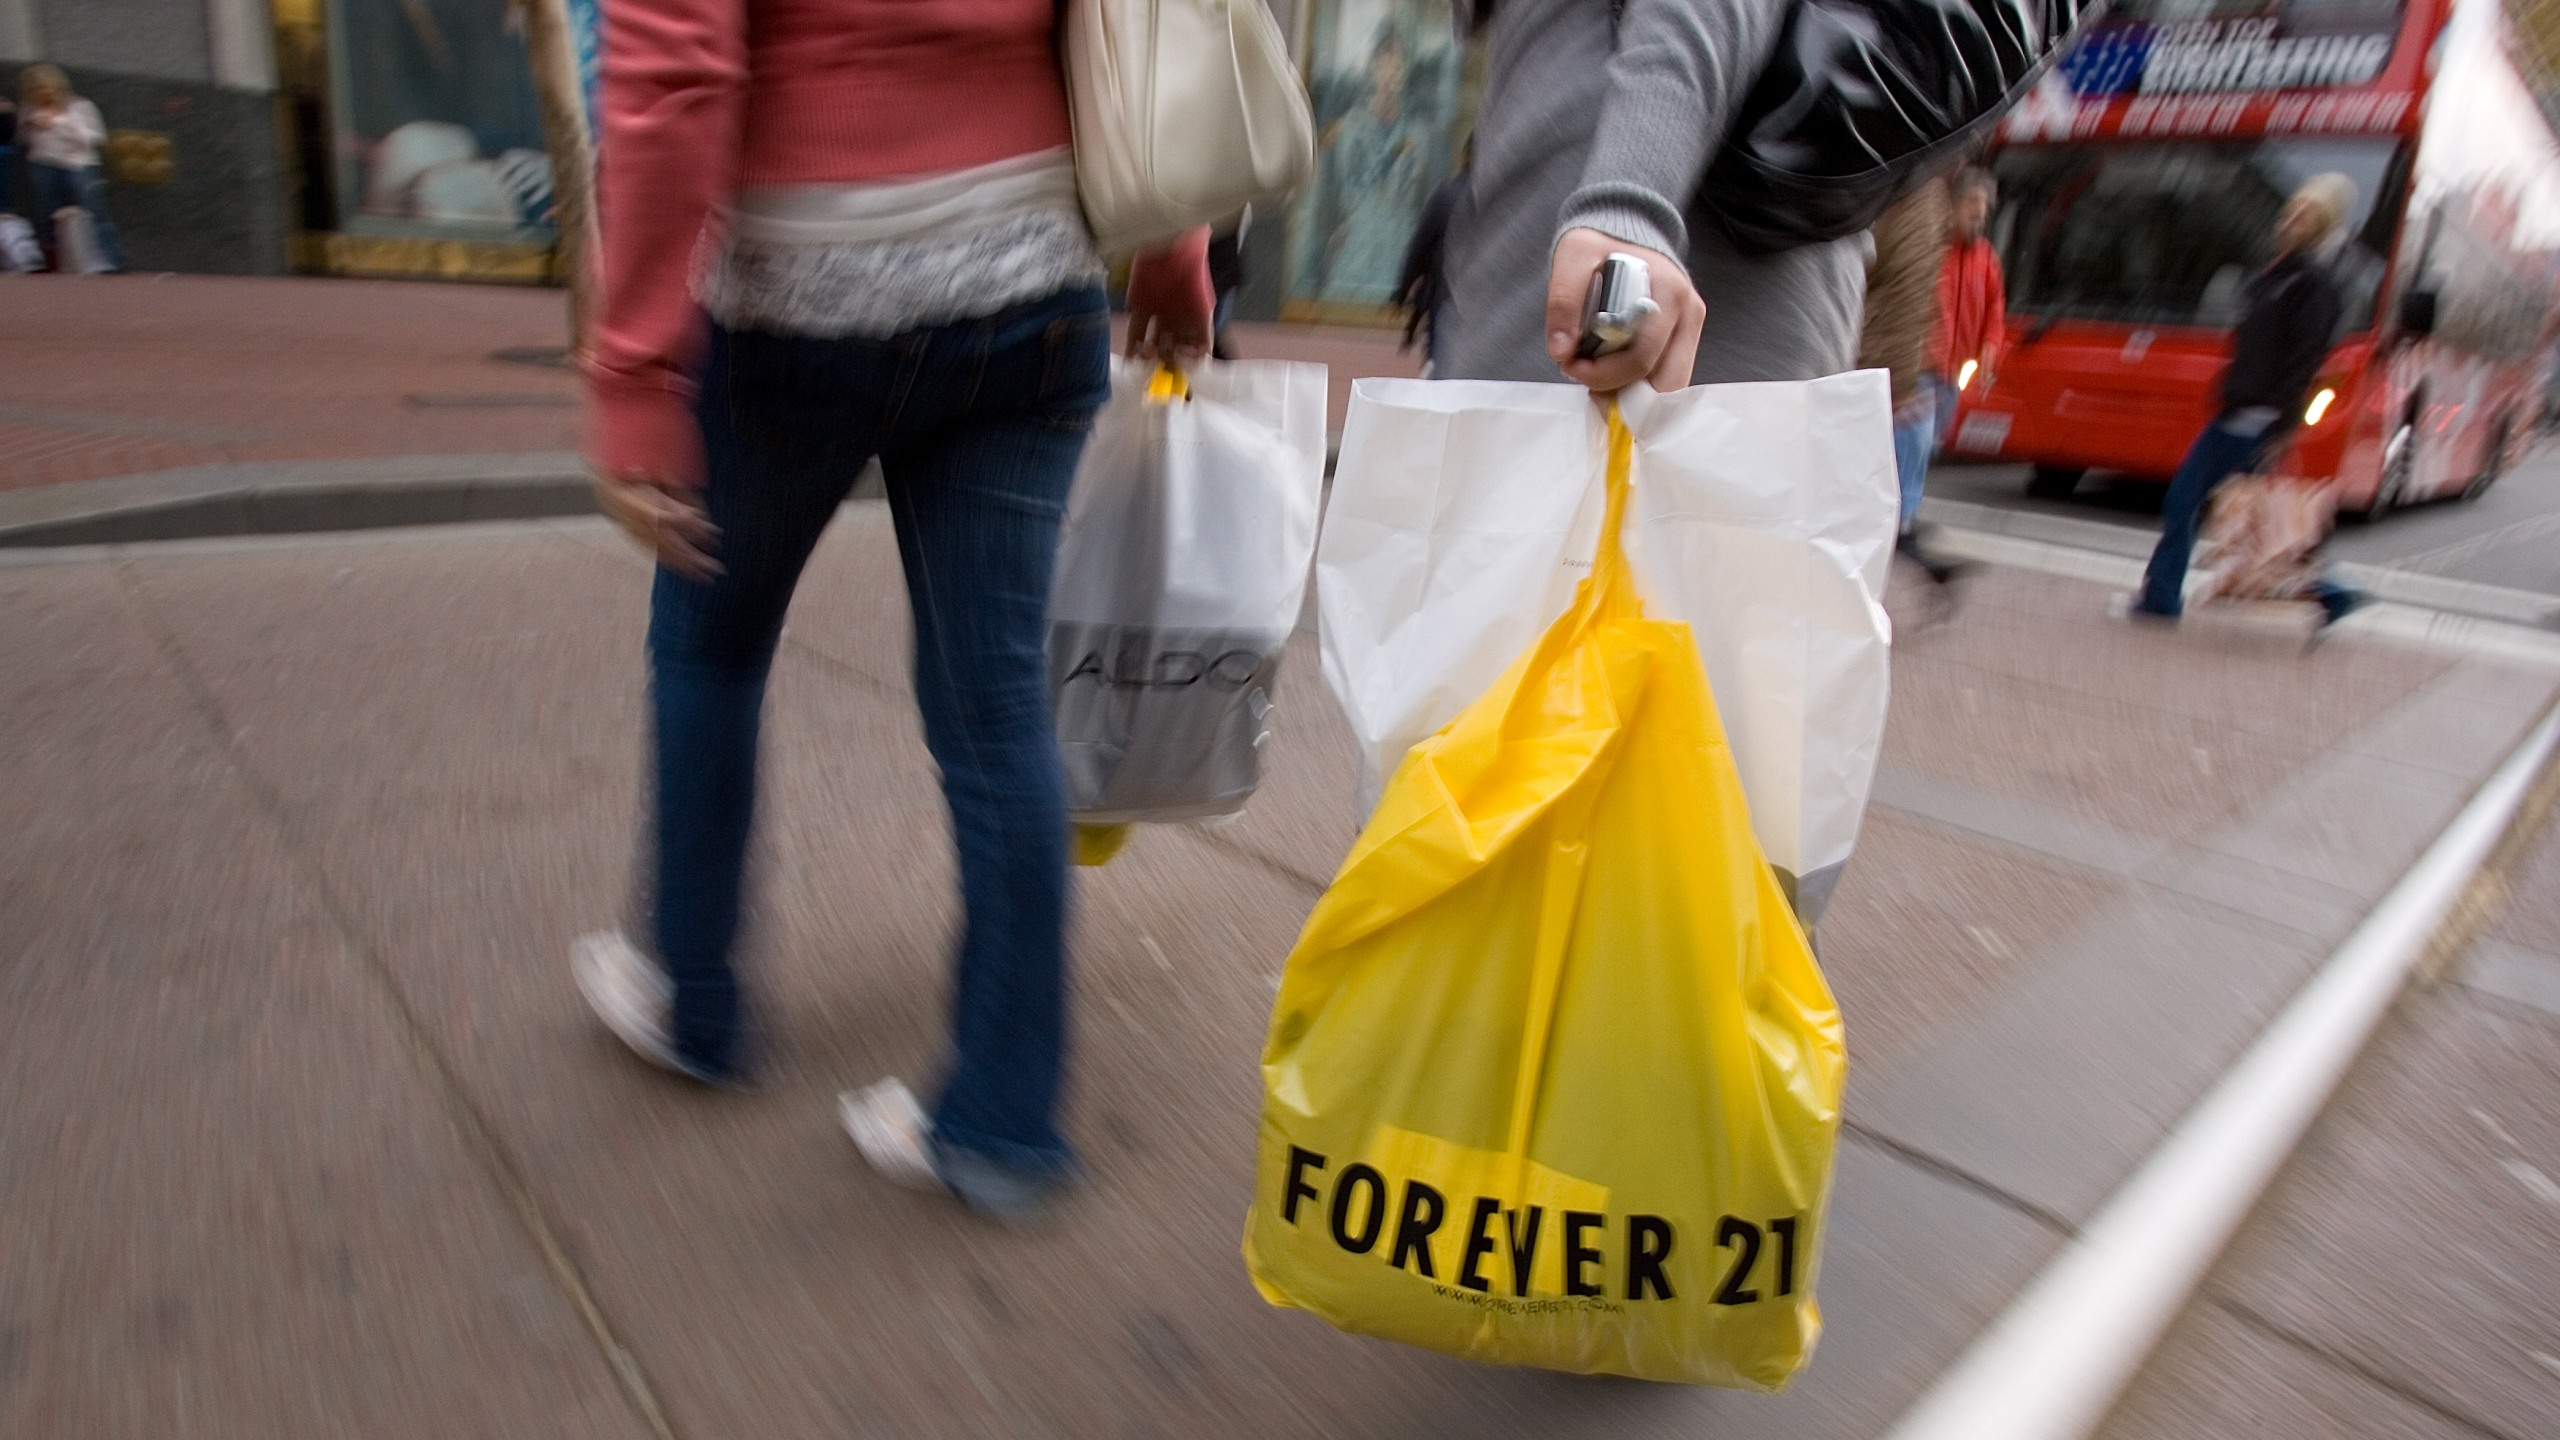 A shopper holding a Forever 21 bag walks in downtown San Francisco on Dec. 27, 2007. (Credit: David Paul Morris/Getty Images)